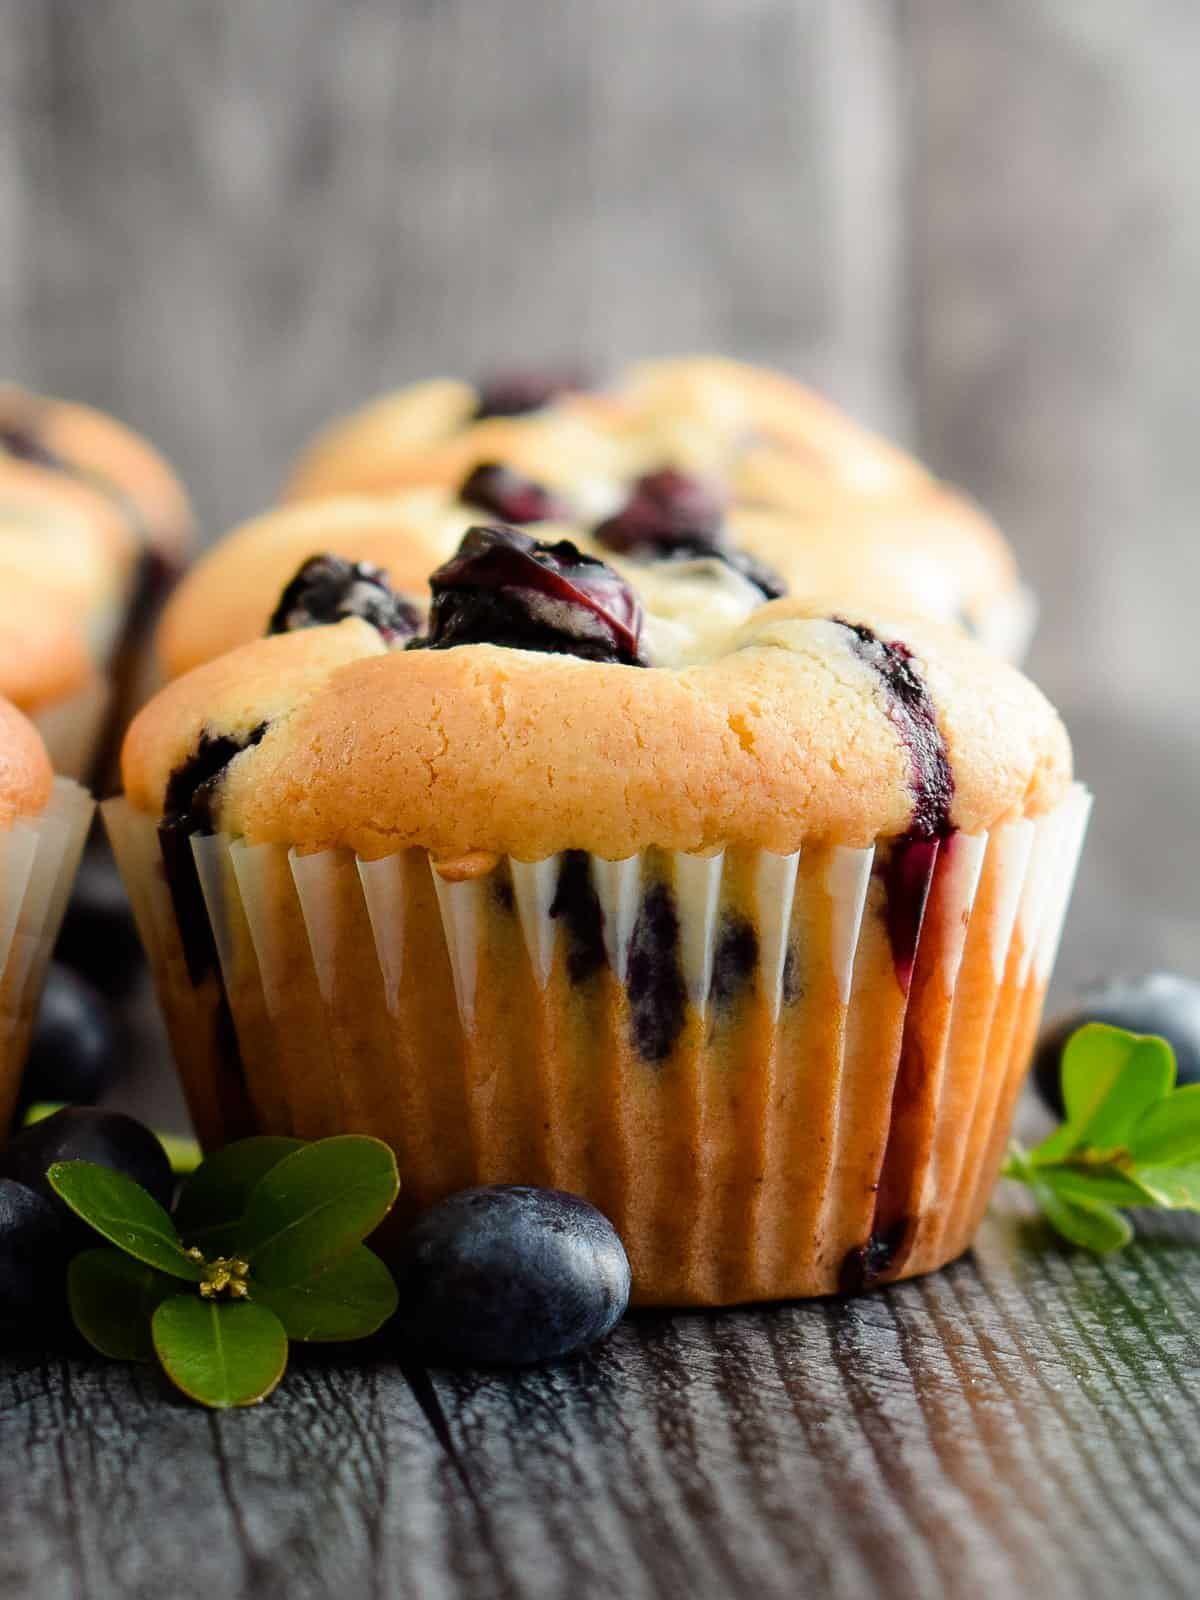 Sour Cream Blueberry Muffins Olga In The Kitchen Recipe In 2020 Muffin Recipes Blueberry Blue Berry Muffins Sour Cream Blueberry Muffins